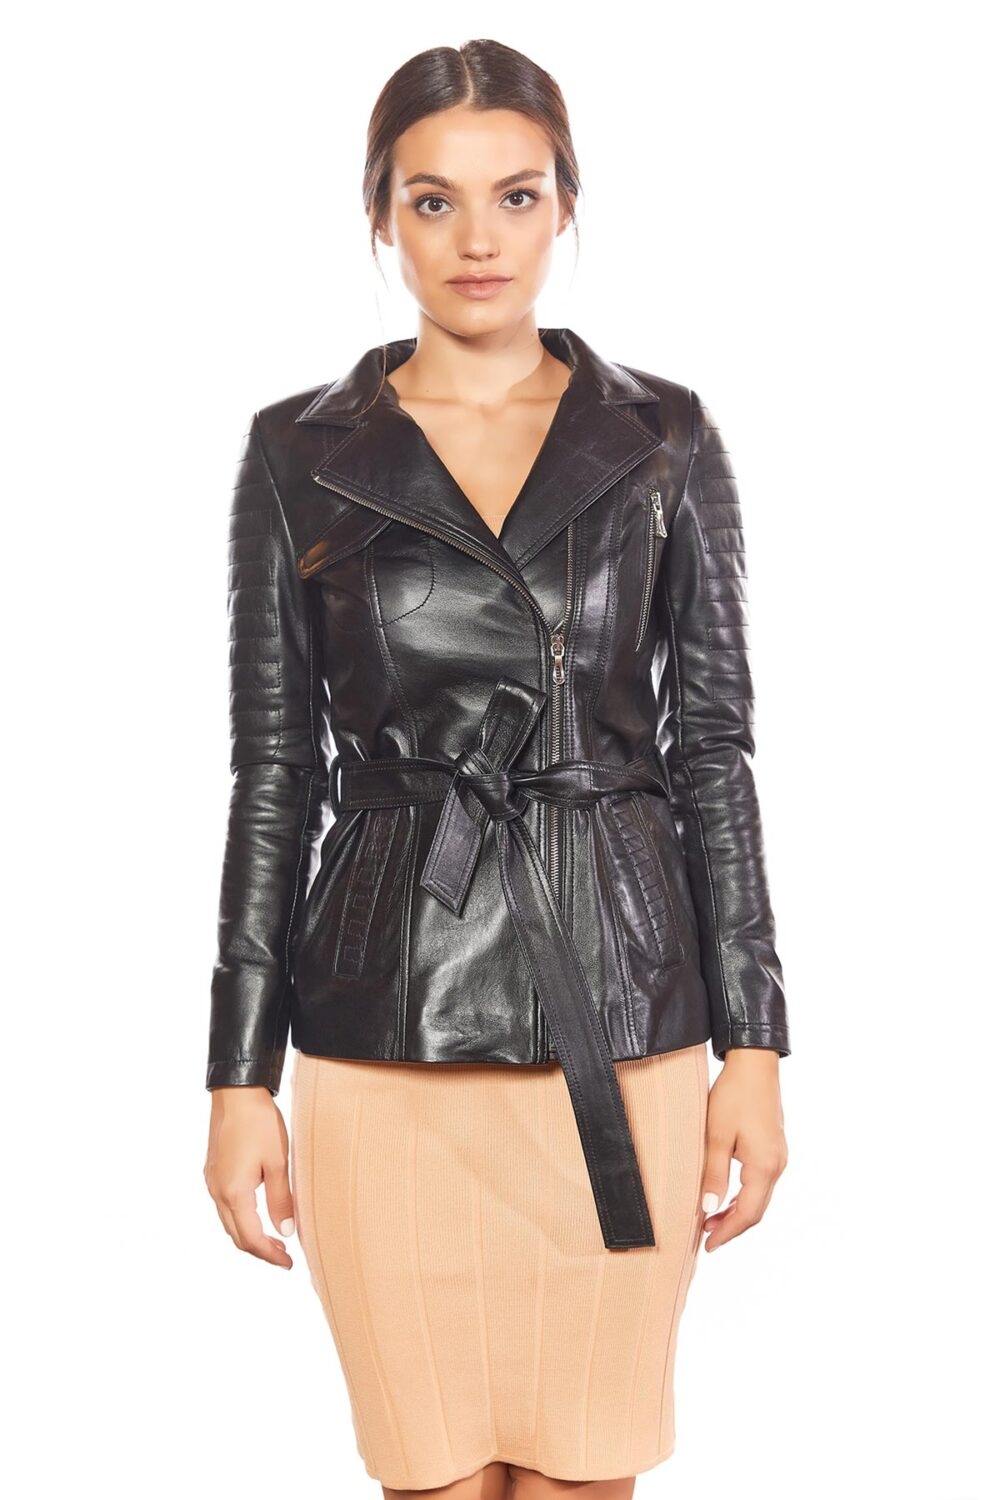 leather jacket cost